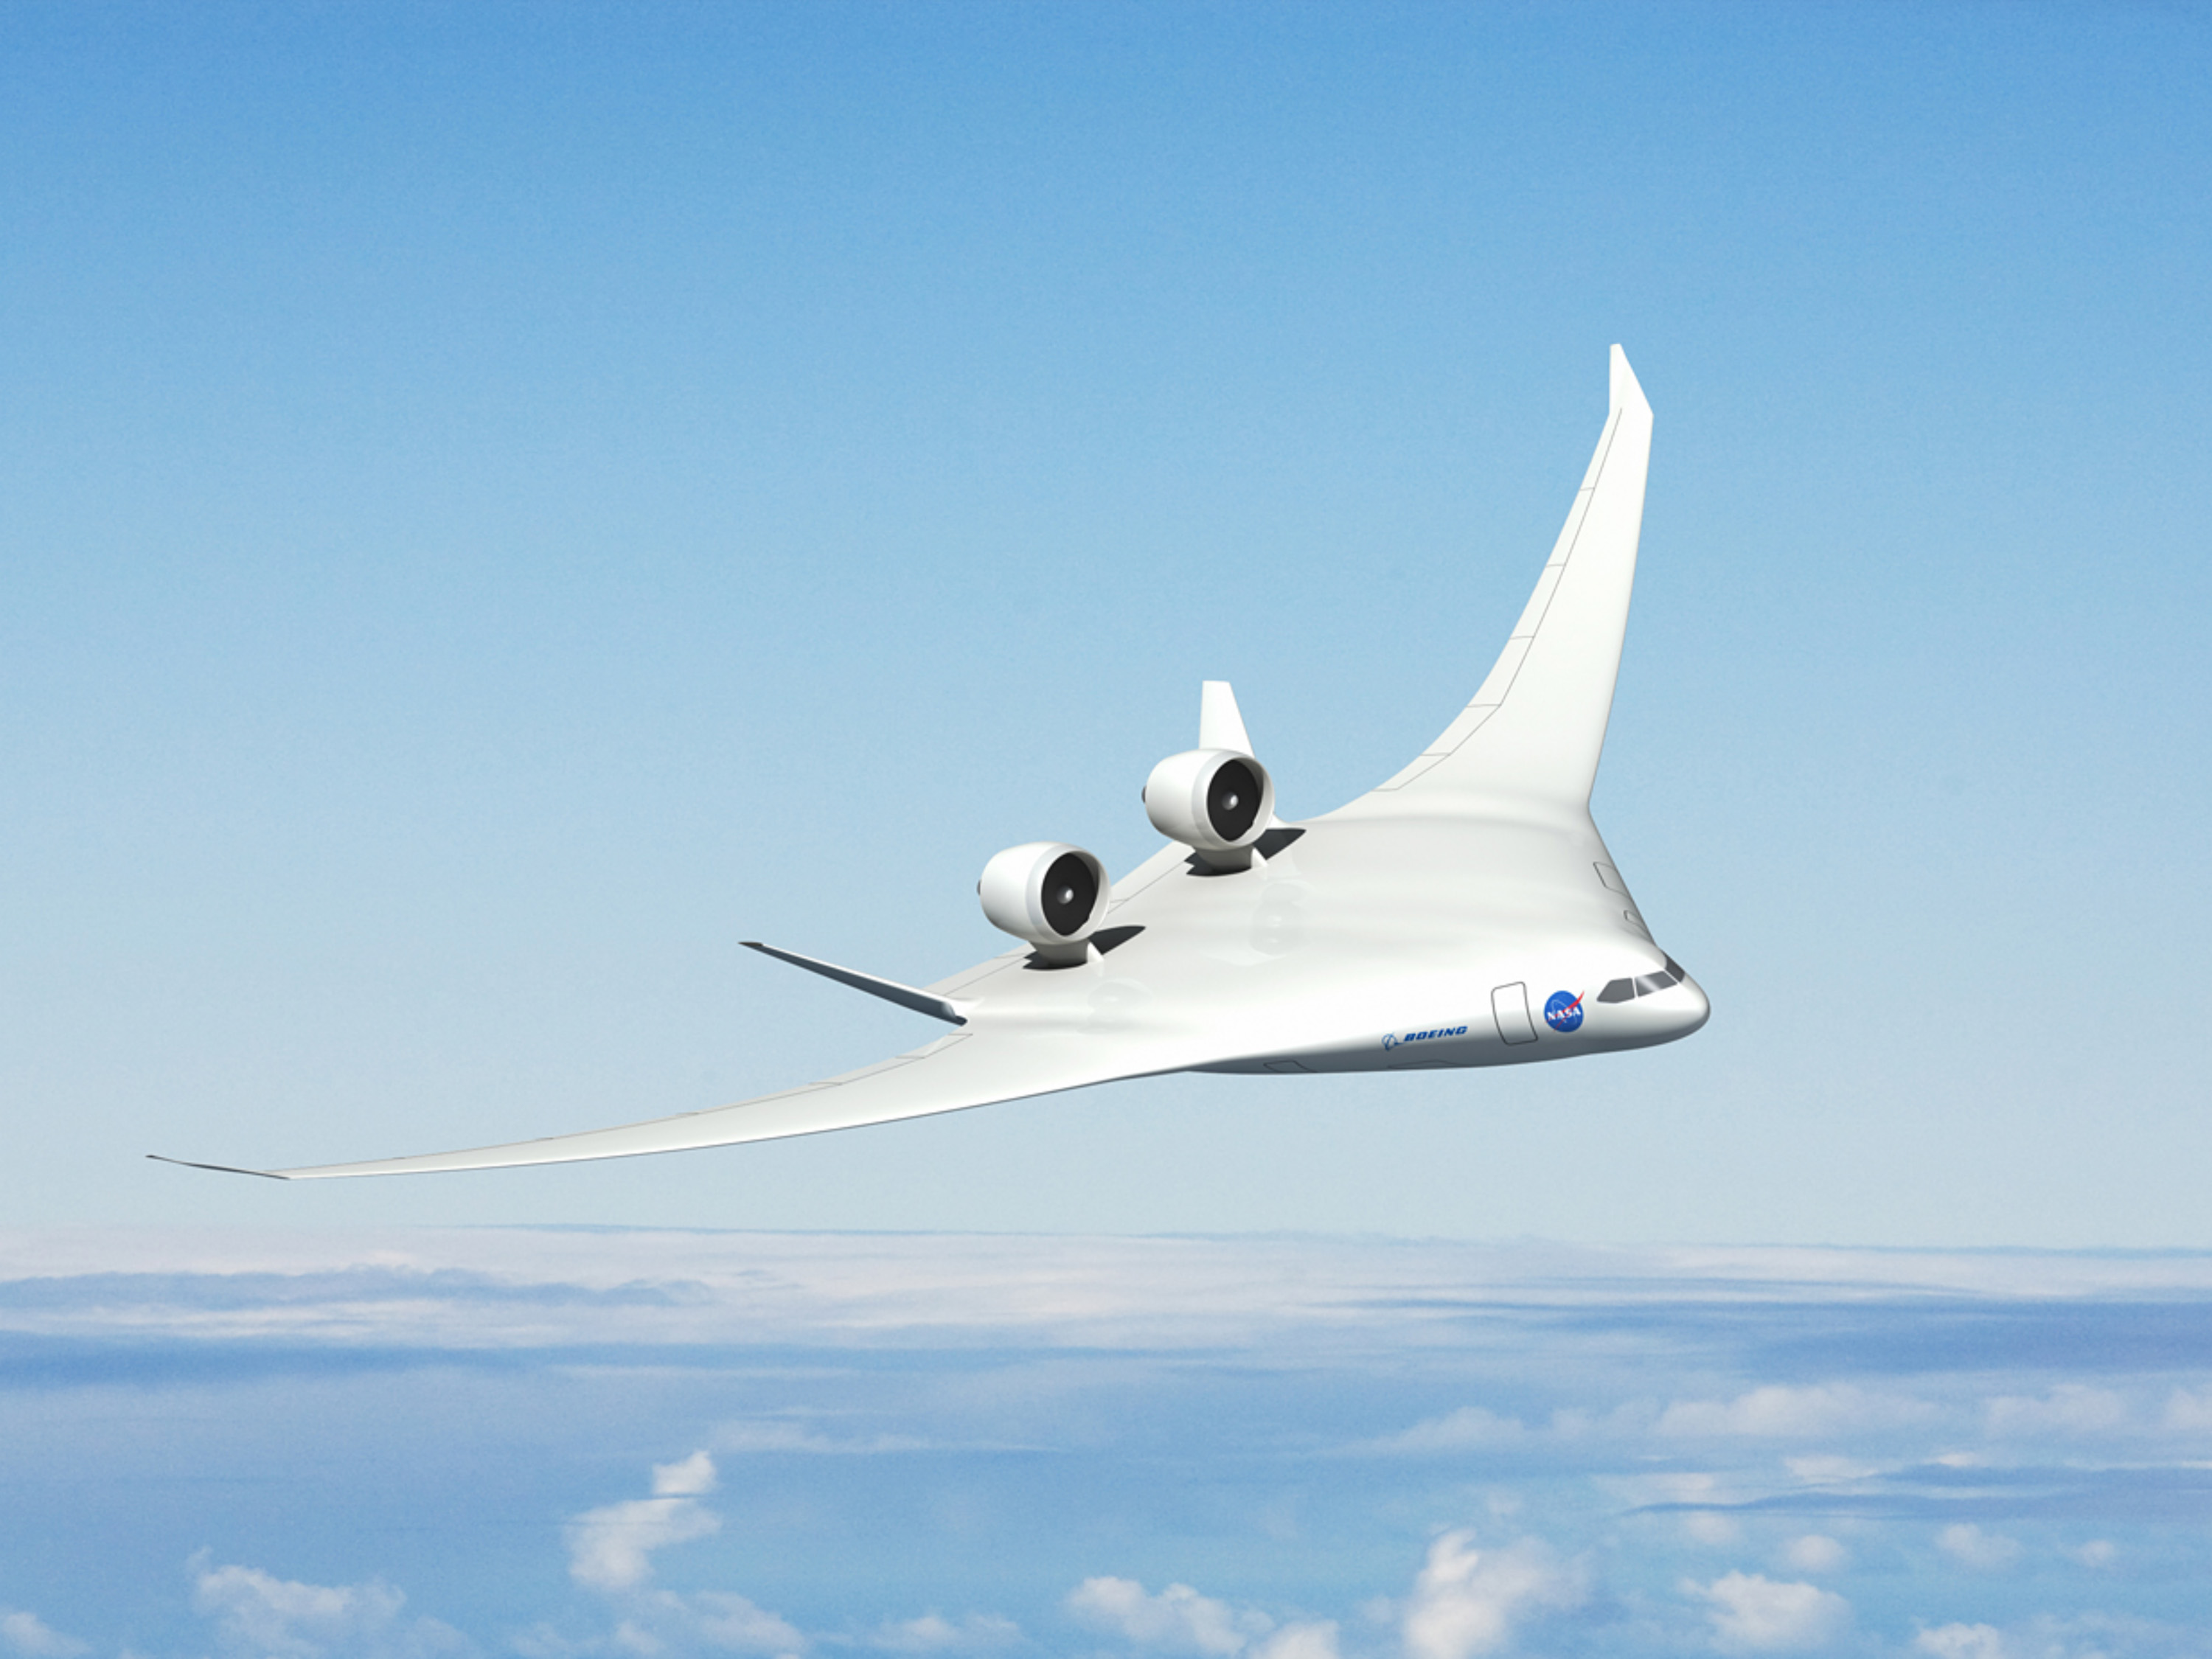 File Boeing advanced blended wing body concept 2011 in addition China Chengdu J 20 also teaandcrafting co as well 1325943 in addition Toyoda sakichi. on fuel s